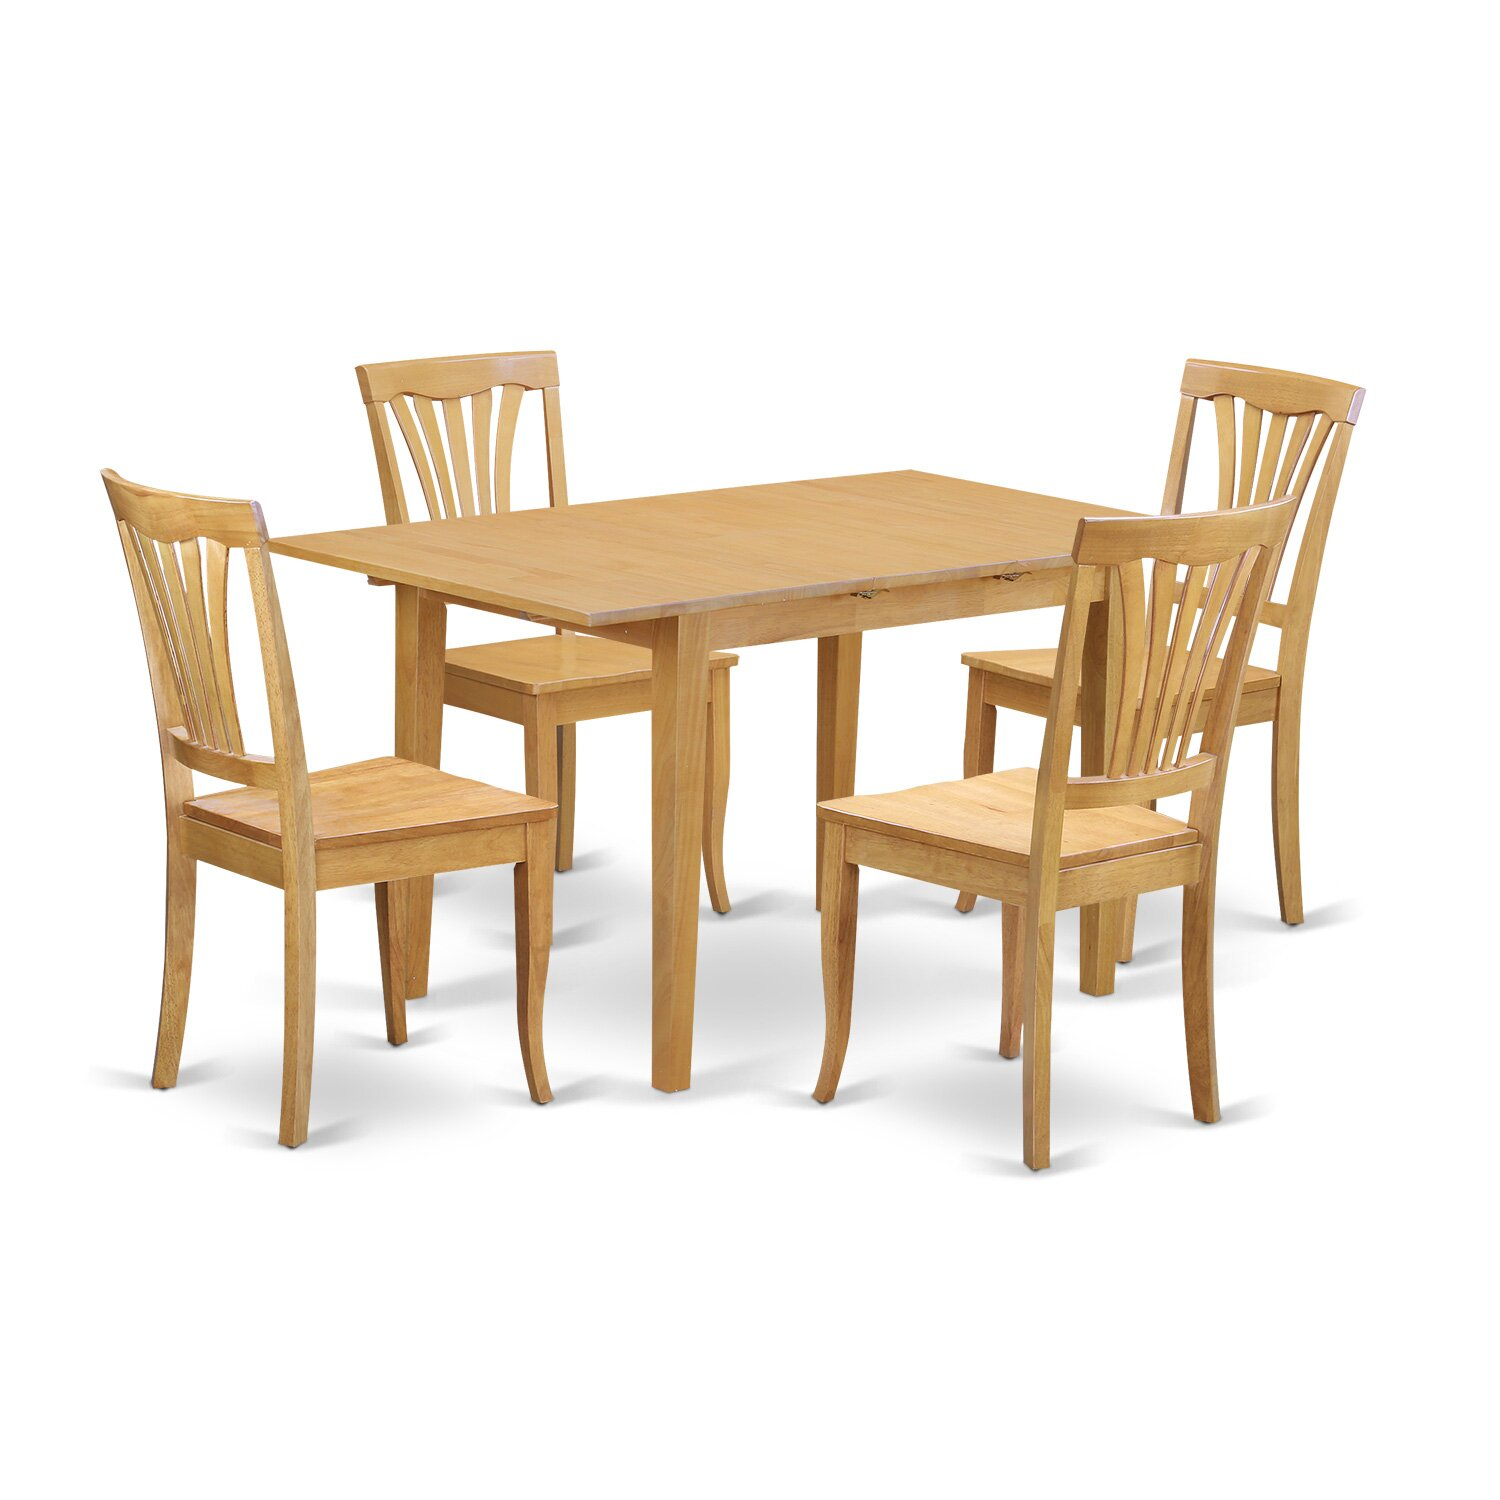 East west norfolk 5 piece dining set wayfair for Breakfast sets furniture